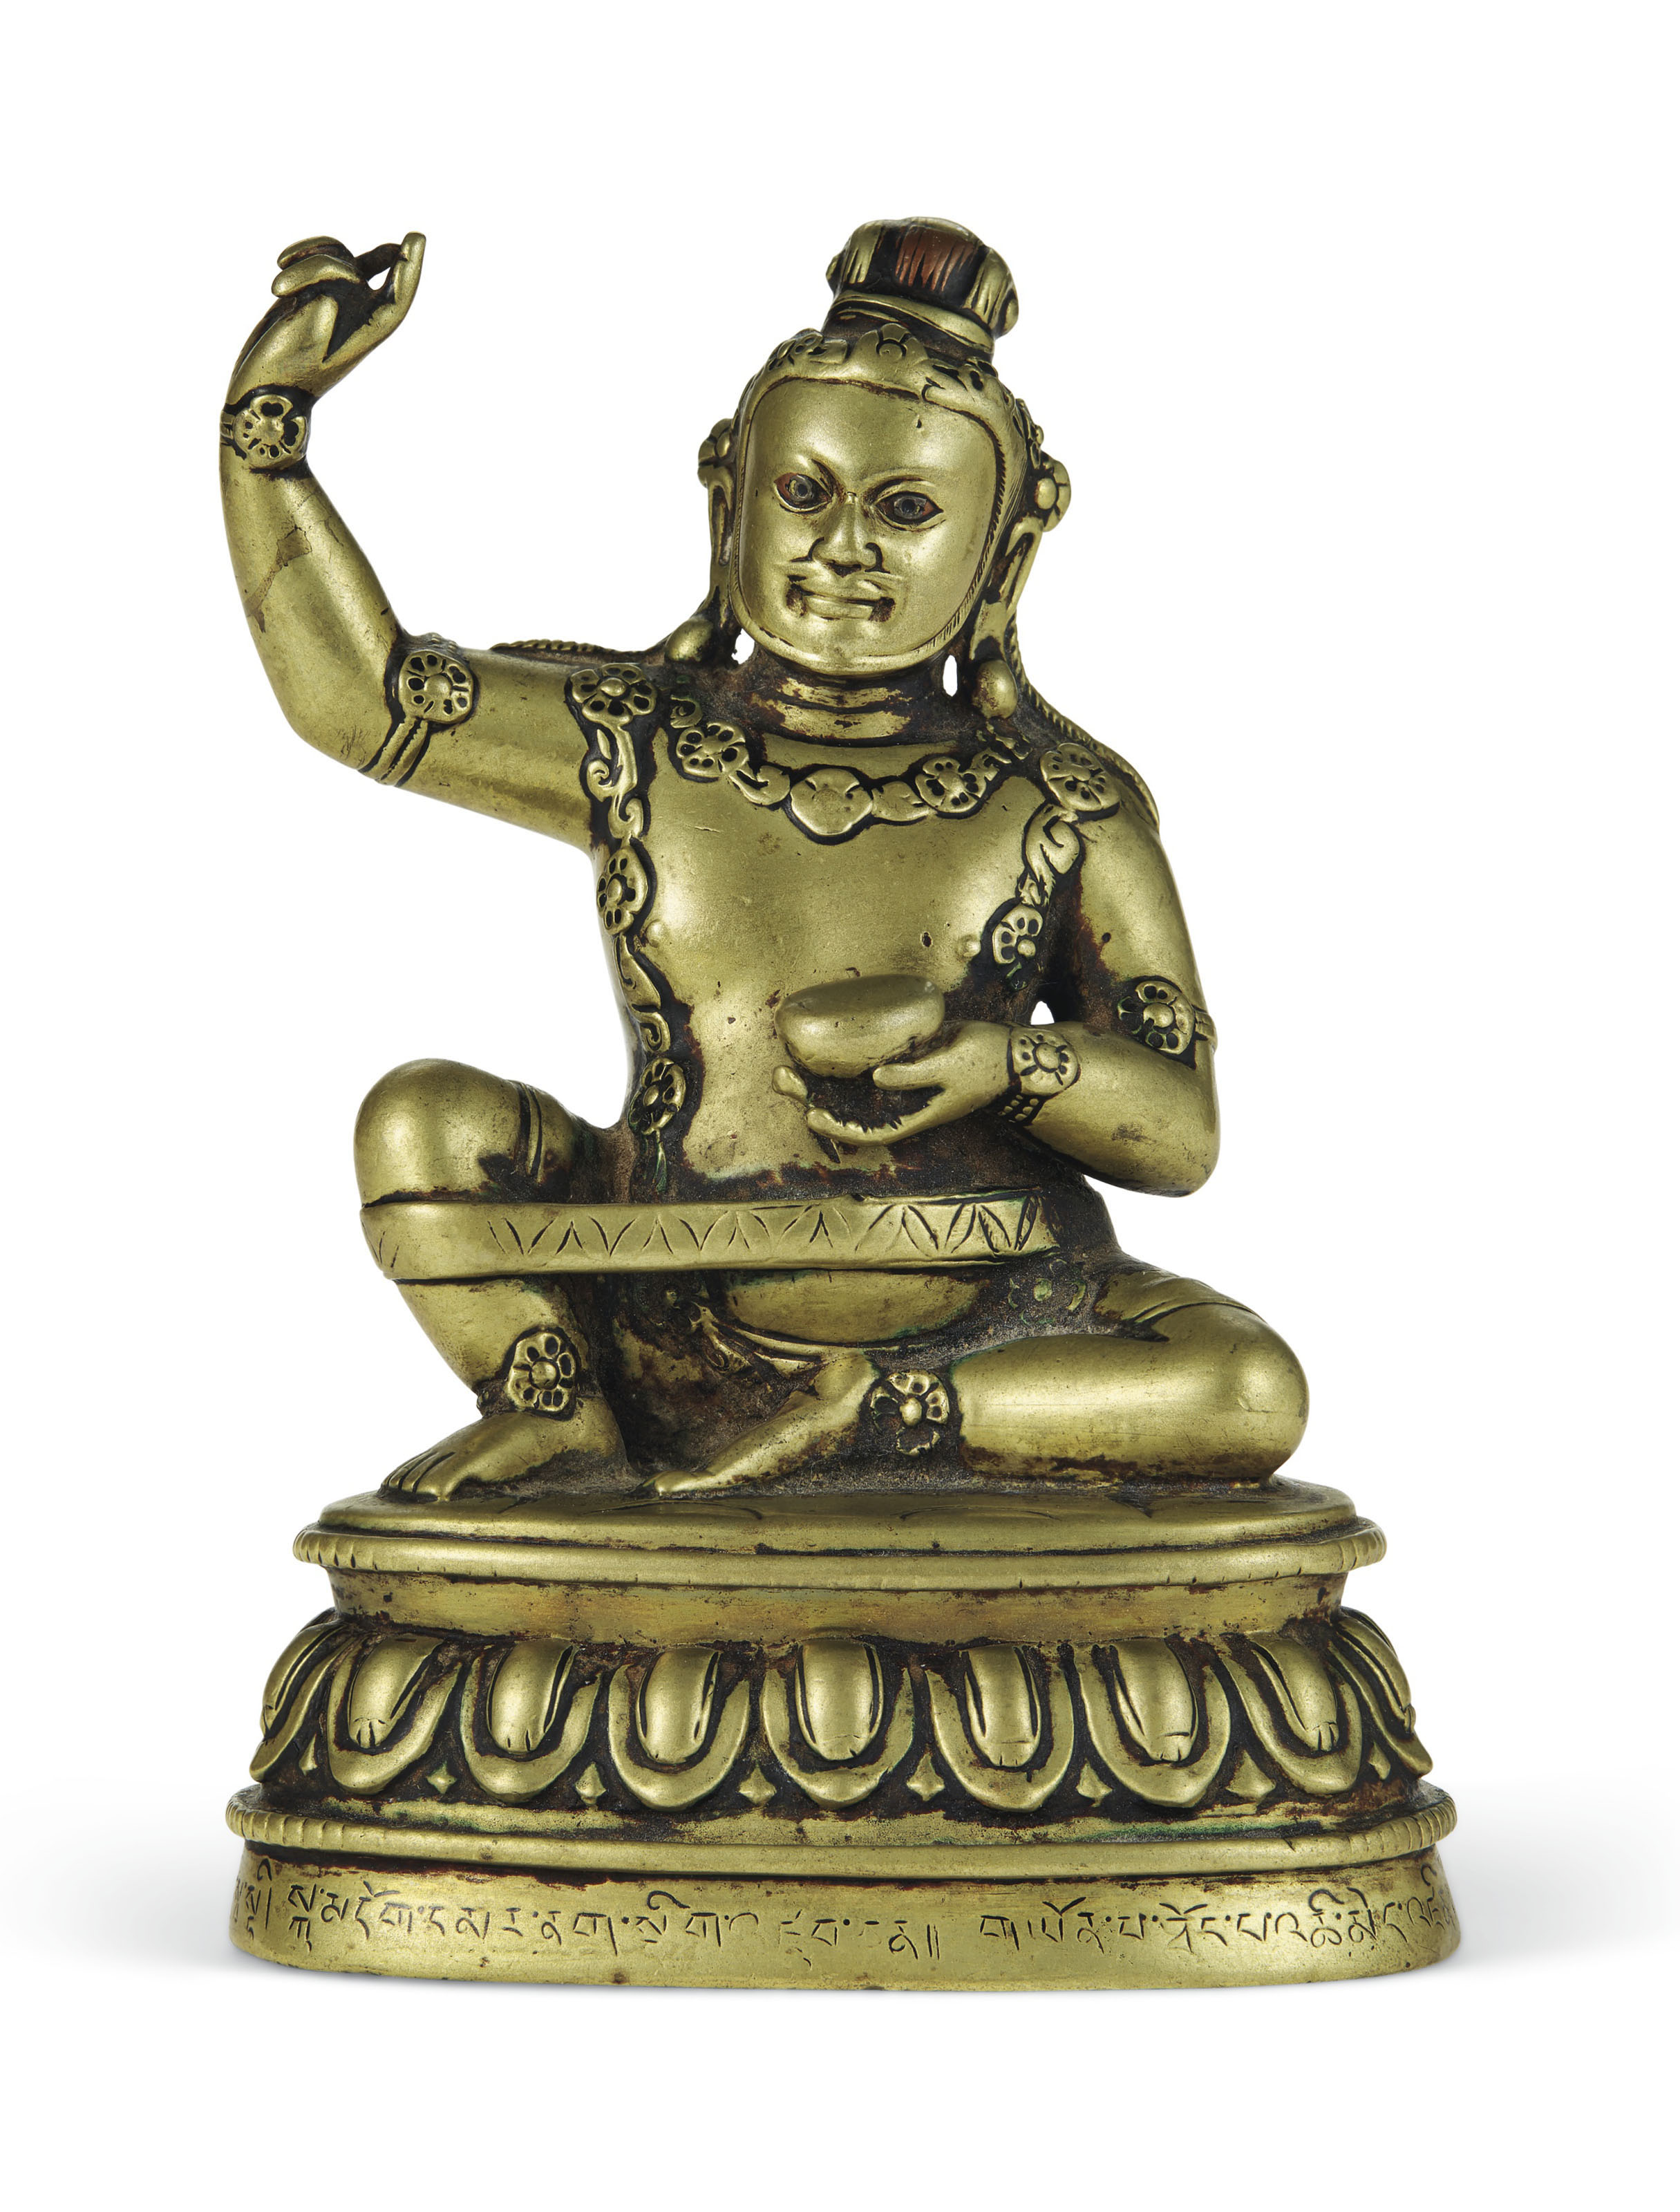 A SILVER- AND COPPER-INLAID BRONZE FIGURE OF VIRUPA